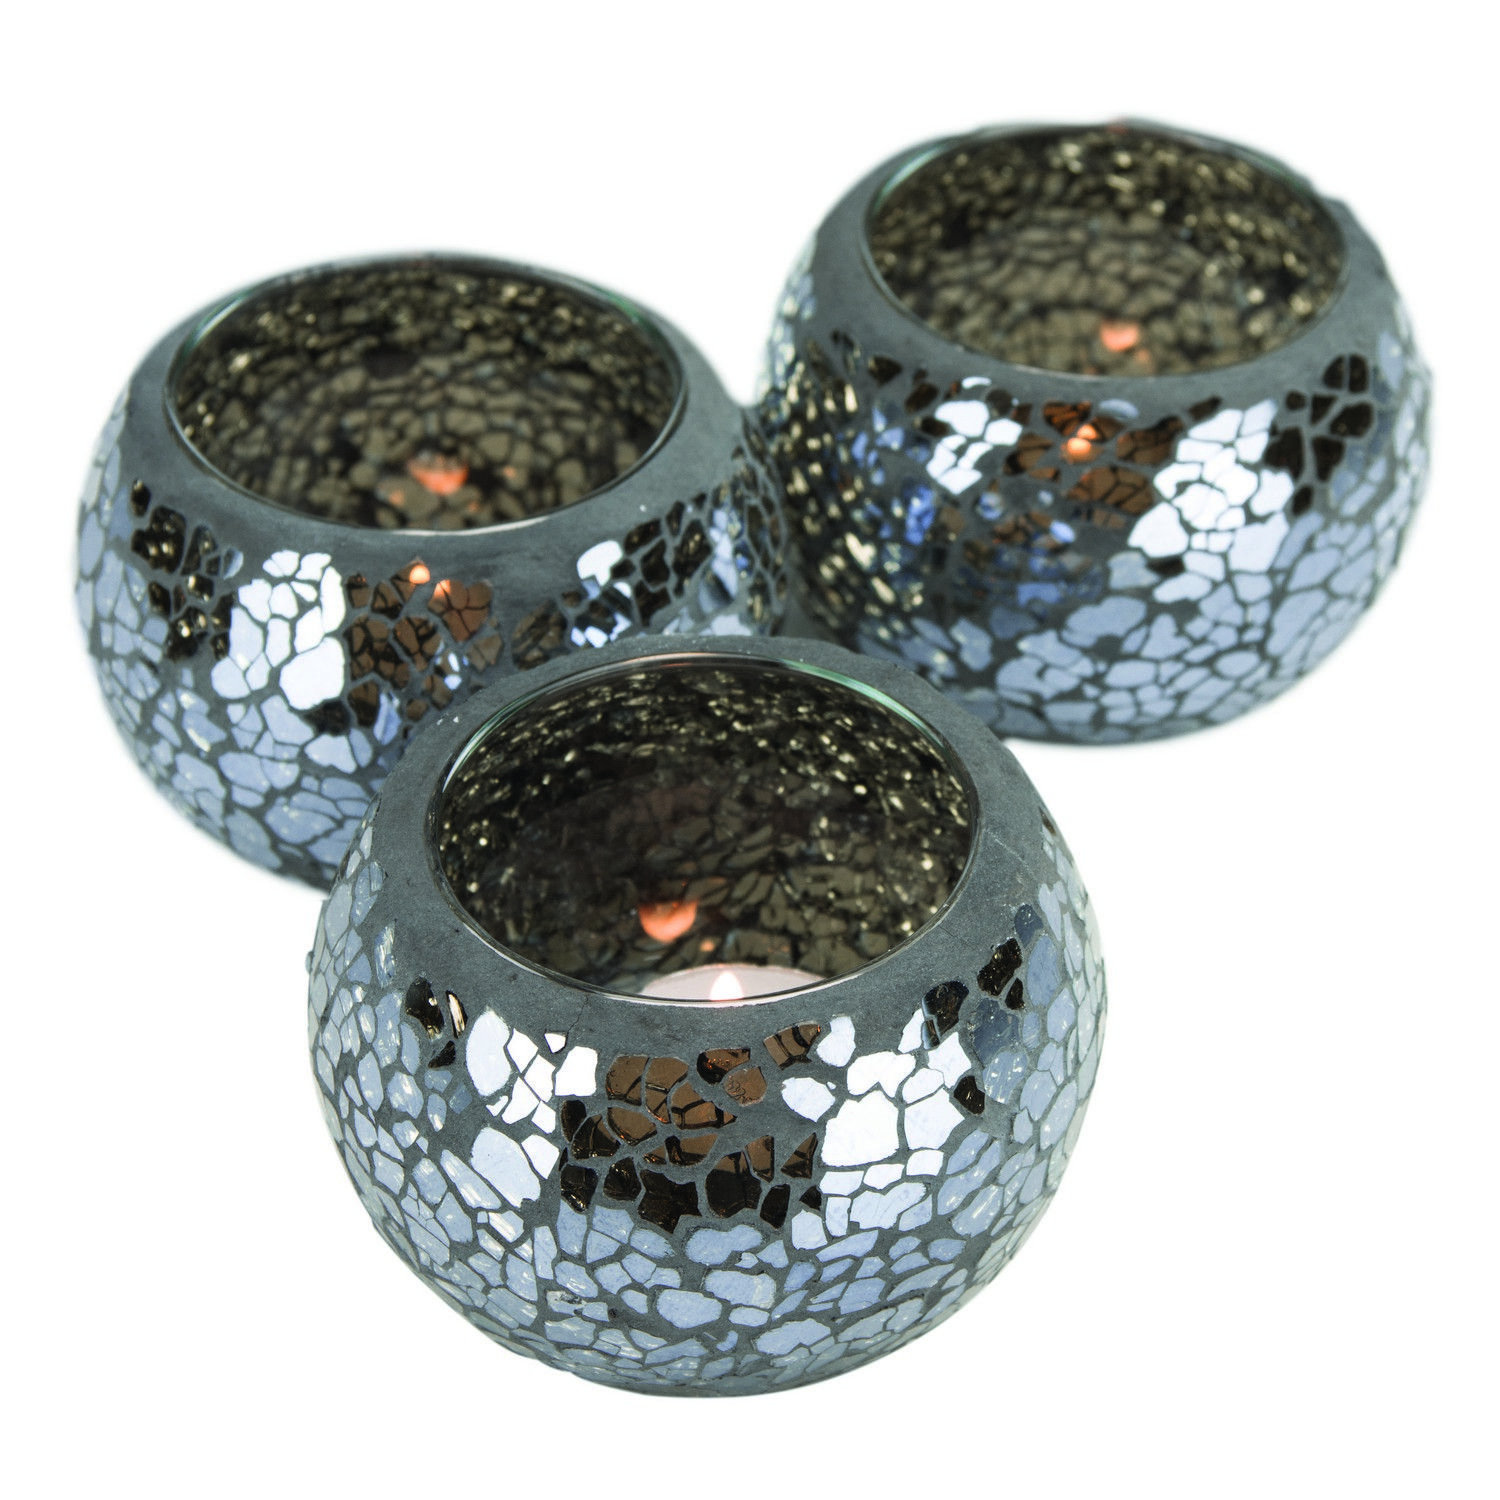 Black Mosaic Tealight Holders (set of 3) Fill with decorative rice/stones for pretty makeup utensil holders